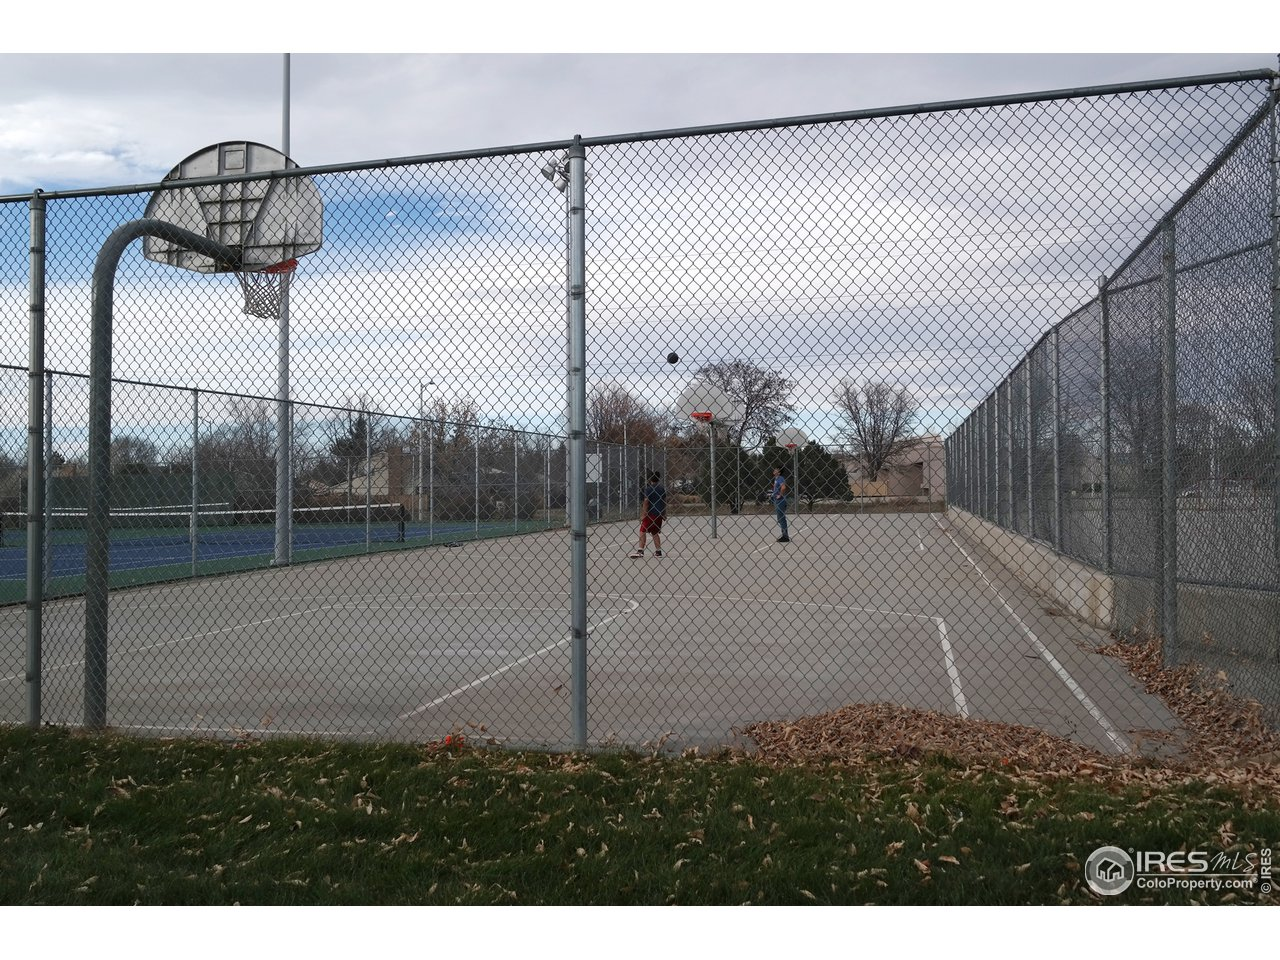 Basketball & Tennis Courts at Carr Park